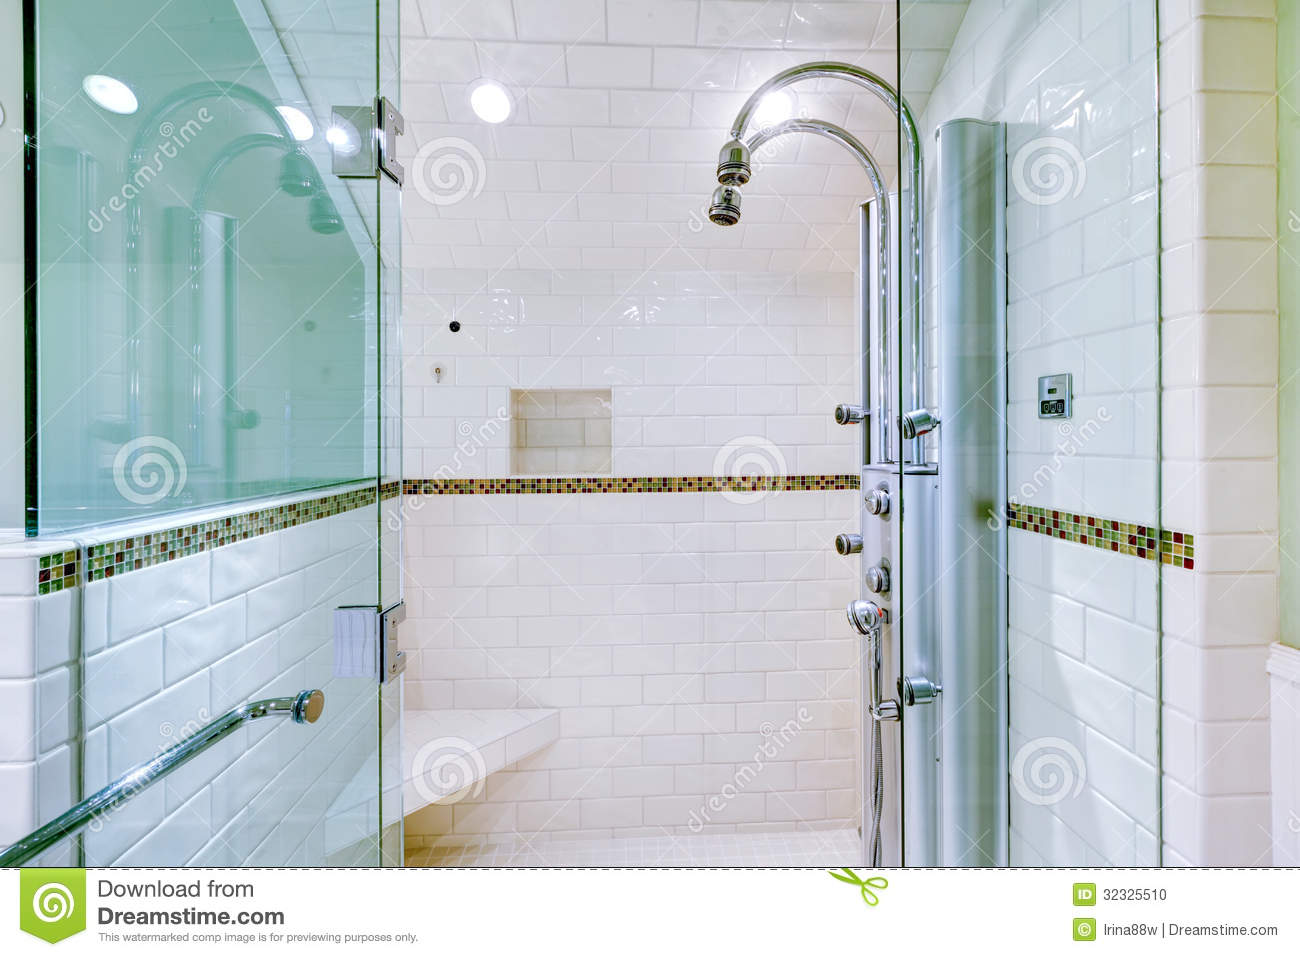 White Large Luxury Bathroom Walk-in Shower. Stock Photo - Image of ...